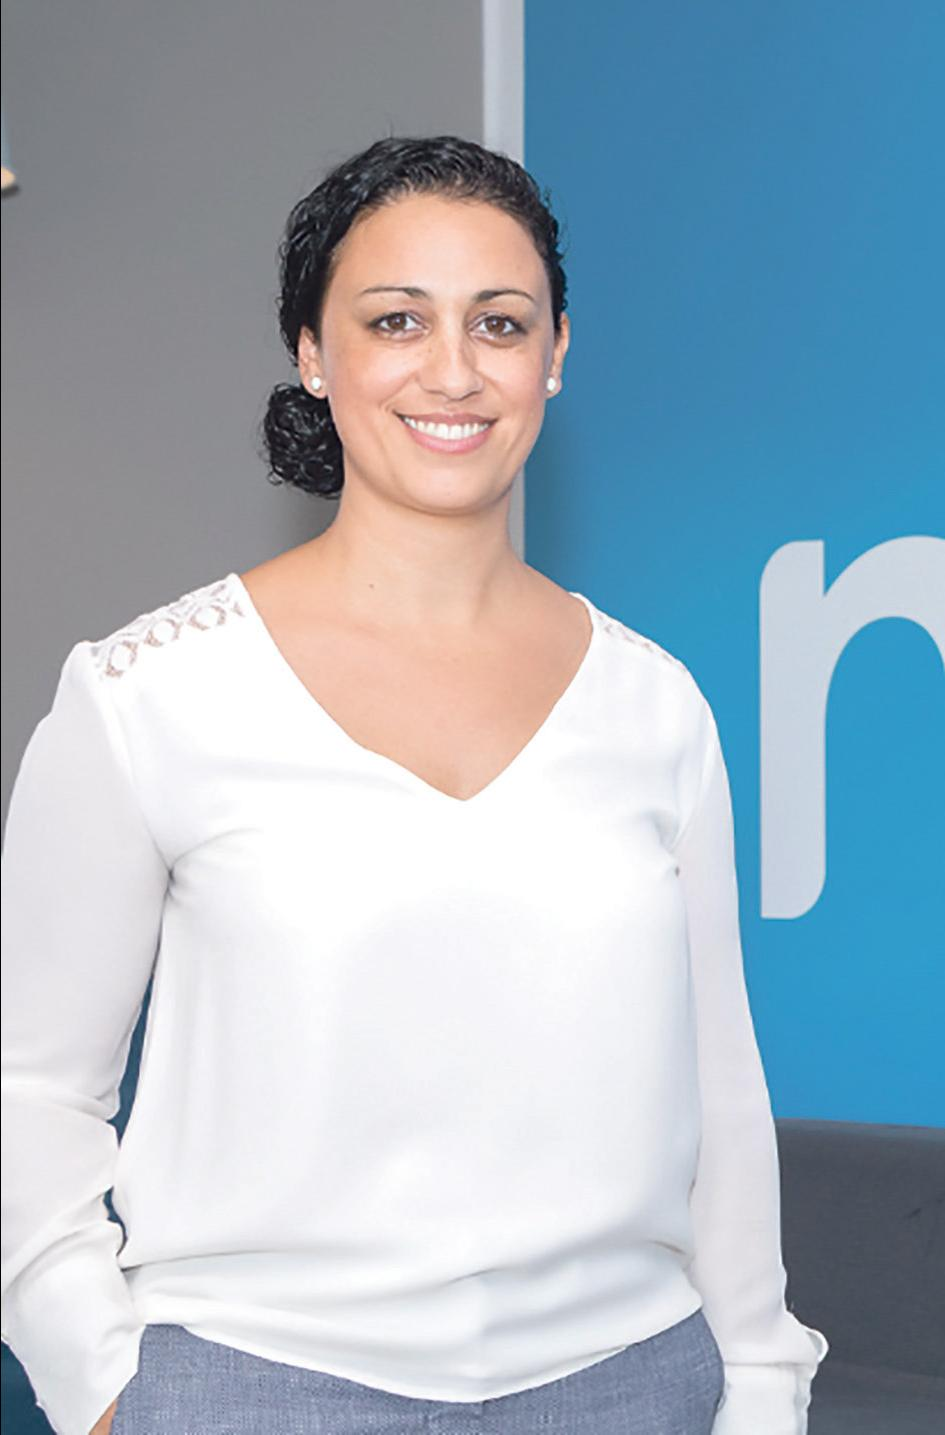 Graziella Costa, Melita's new head of customer experience